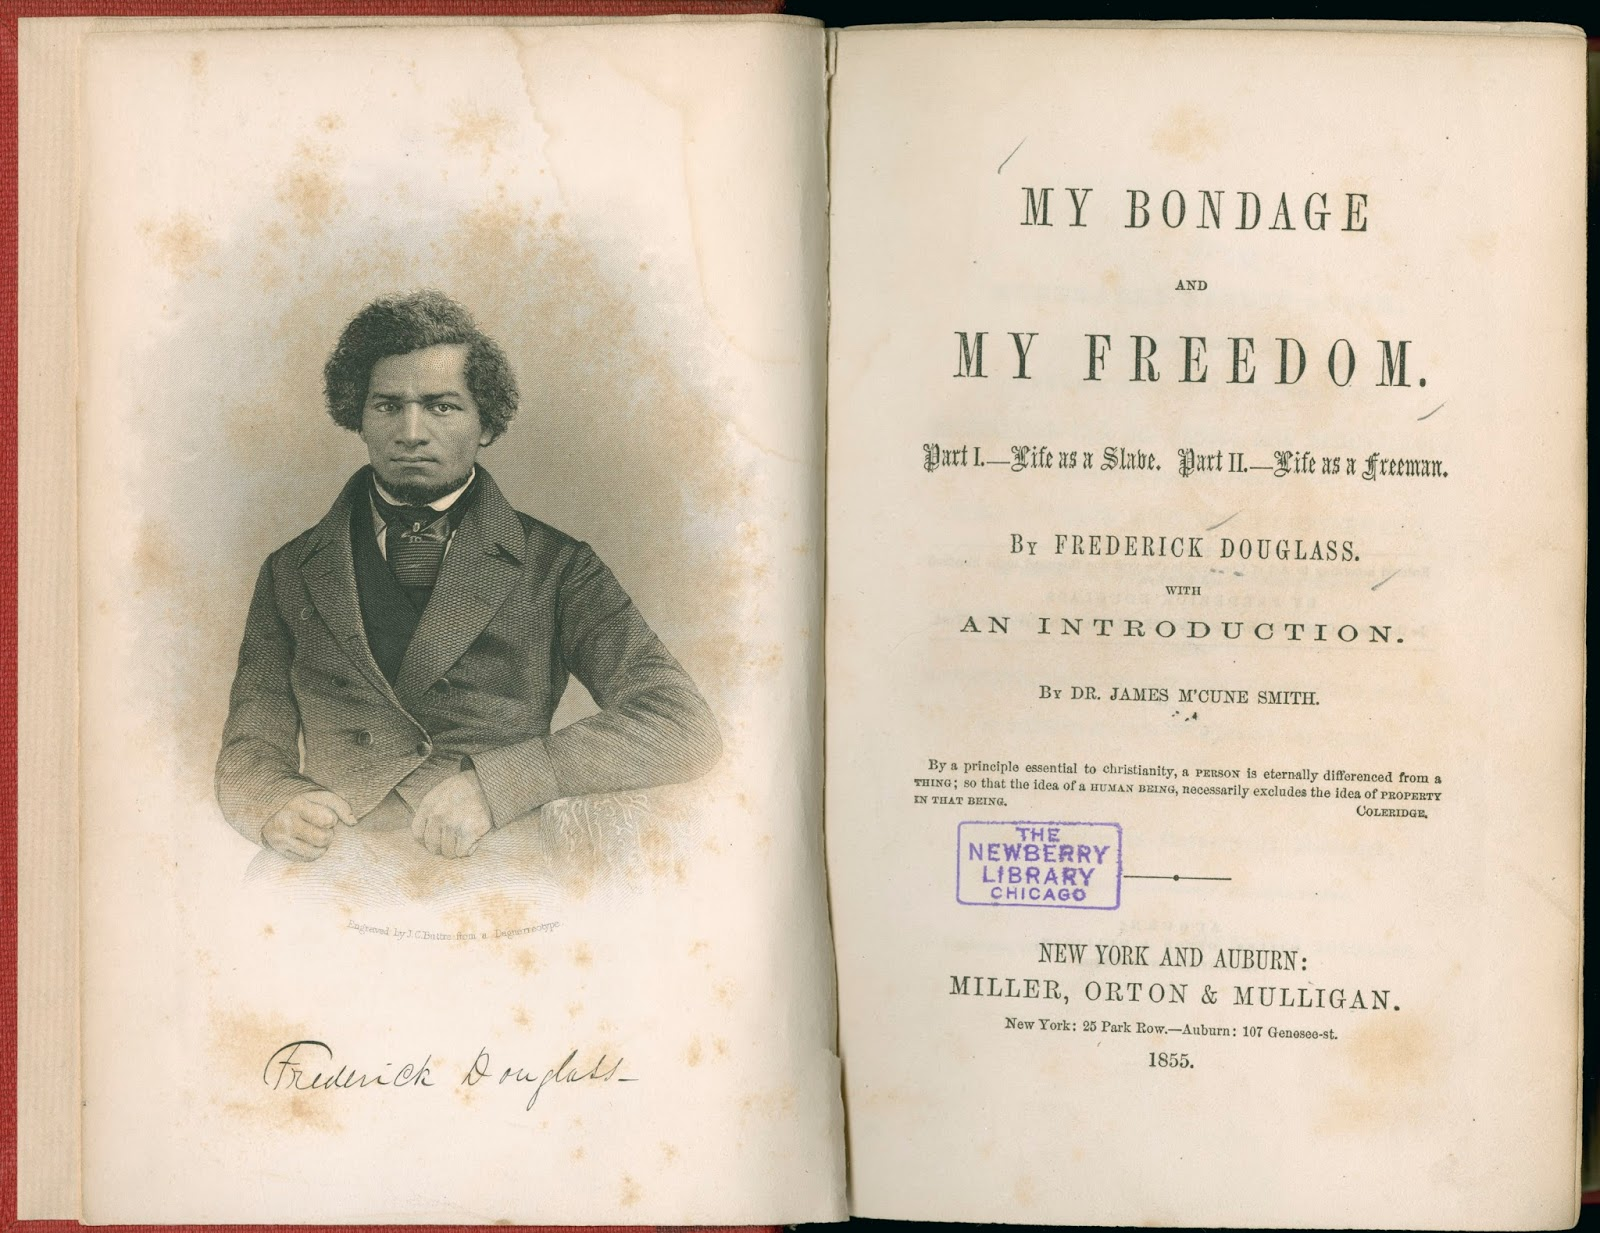 A Picture Book of Frederick Douglass